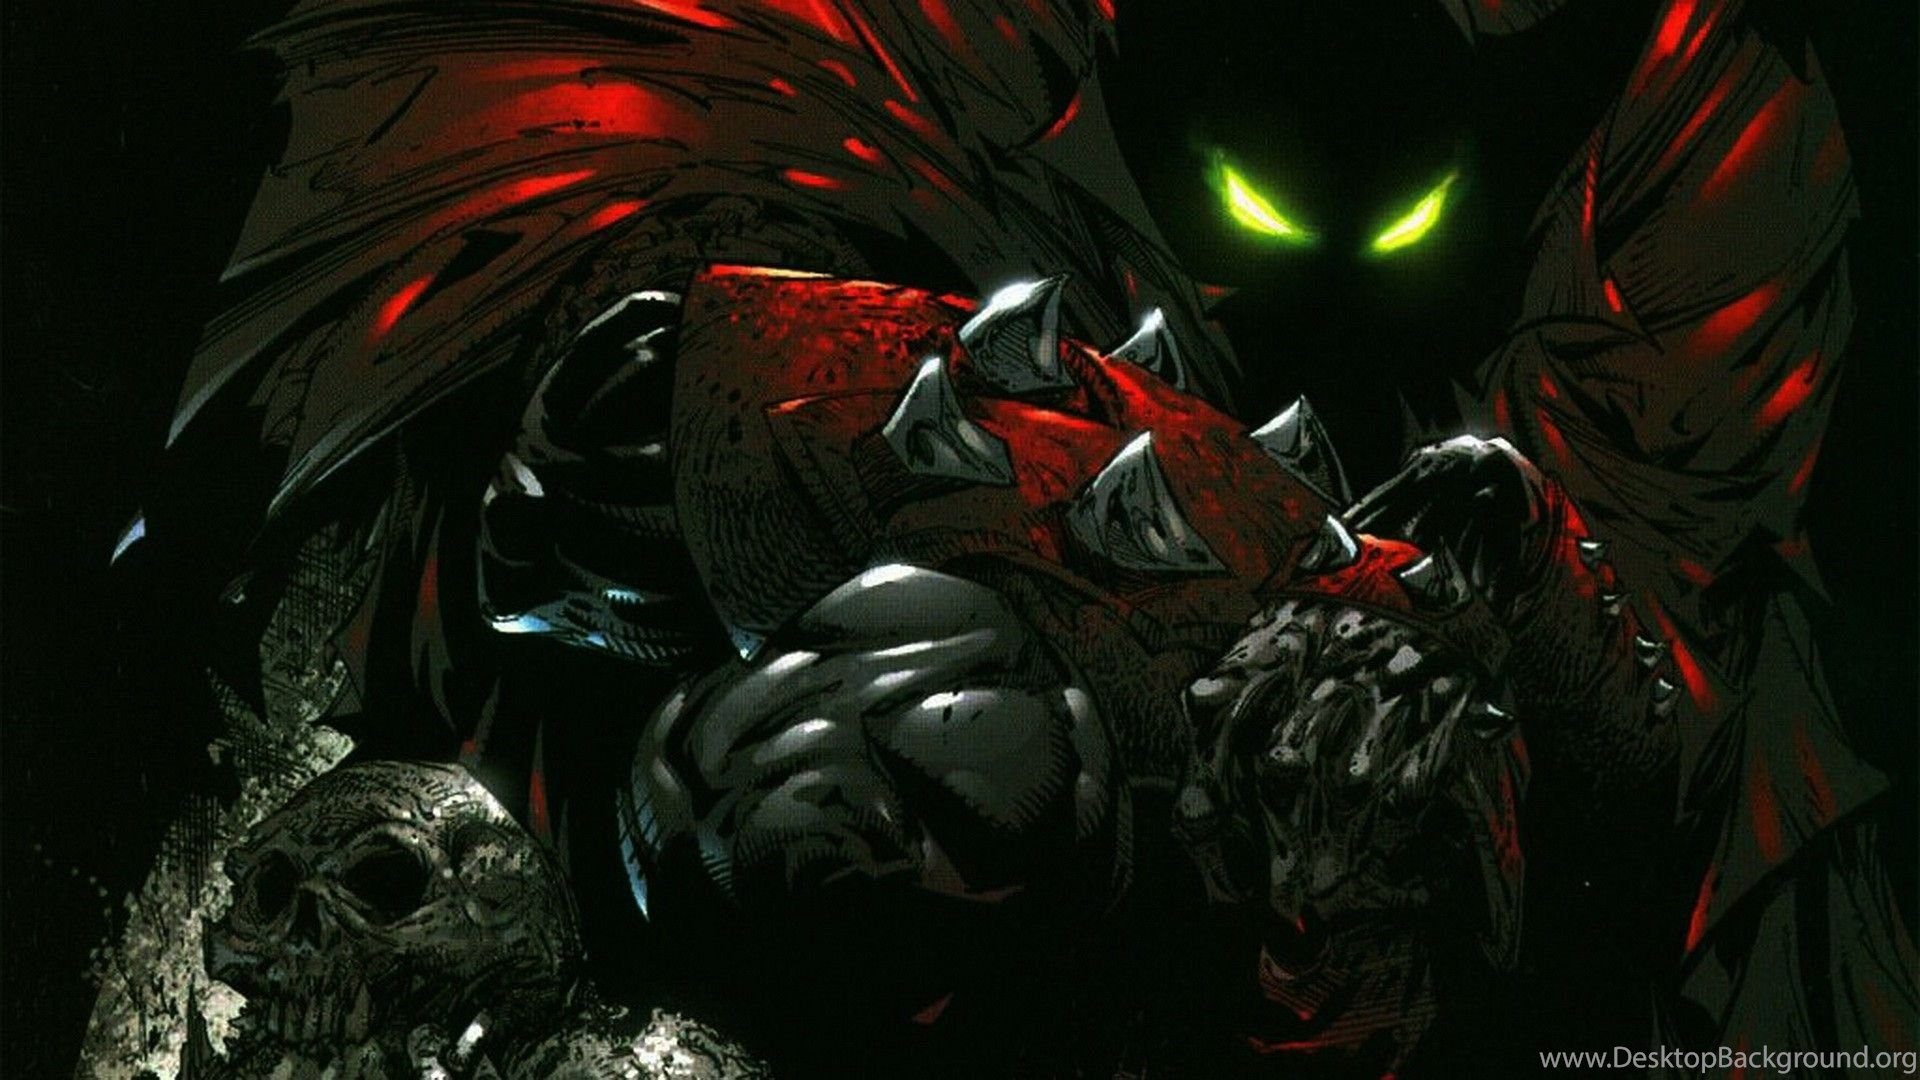 3d Animated Wallpaper Windows 8 Spawn Hd Wallpapers Made By Todd Mcfarlane Ready As